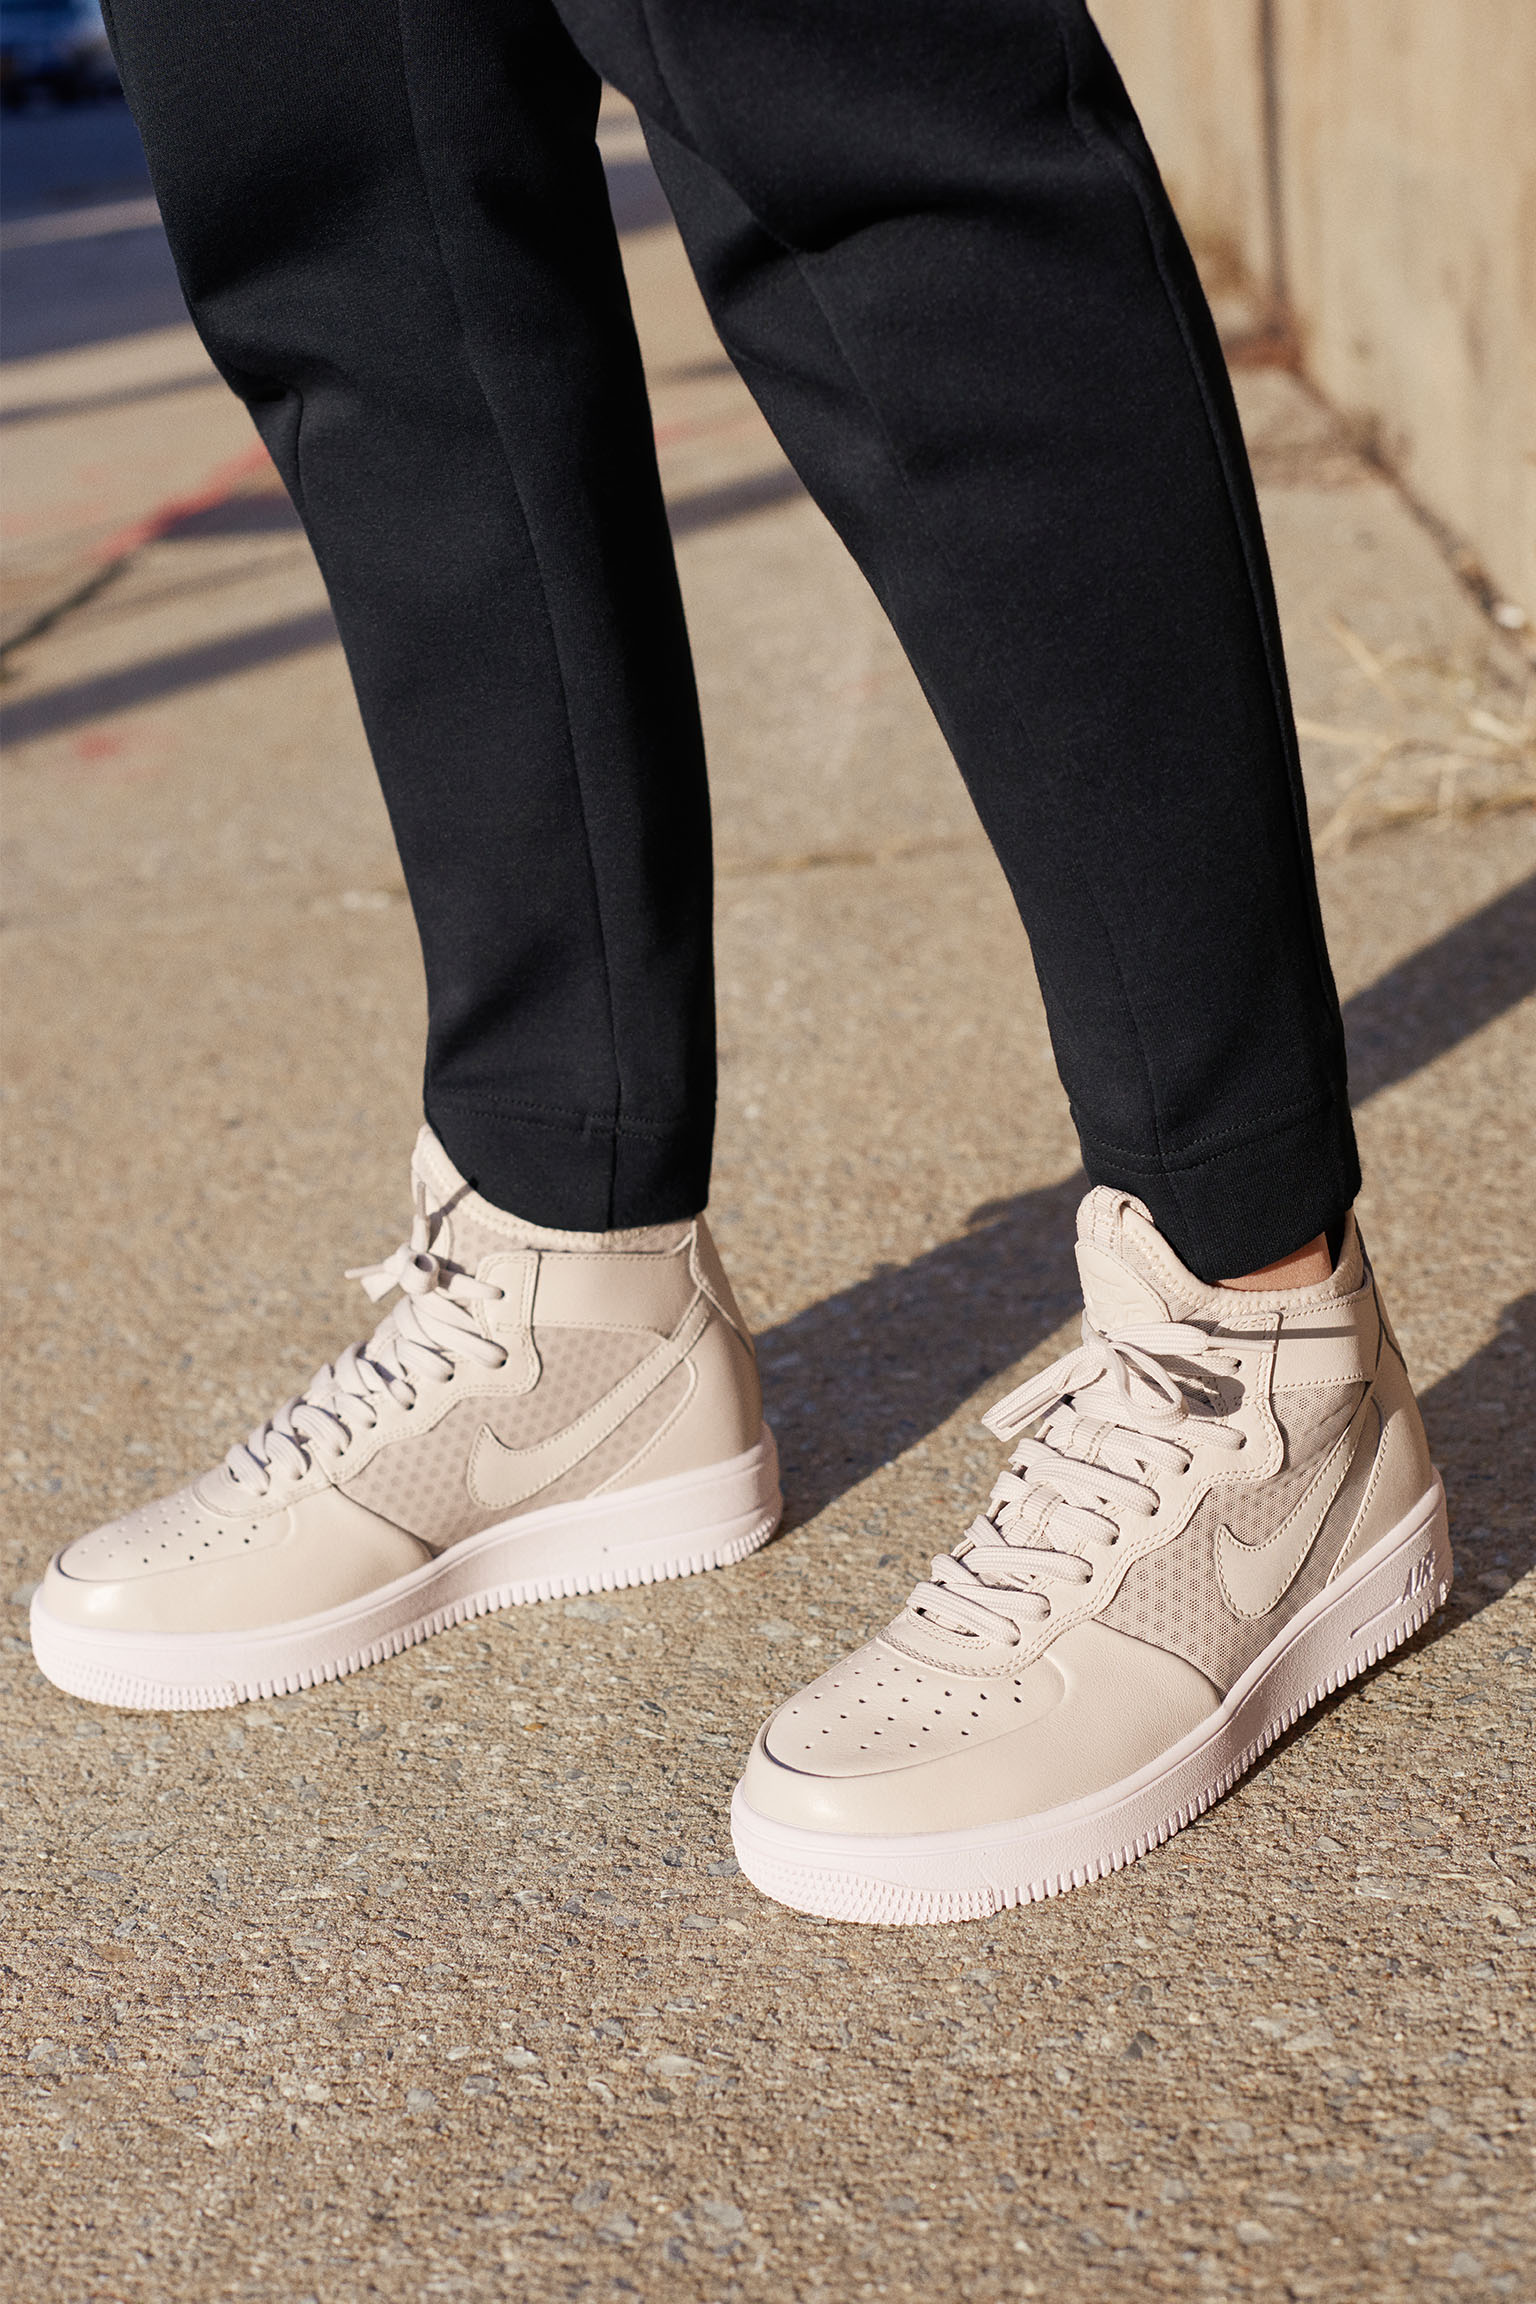 new arrival 3a46a 44662 nike air force one women